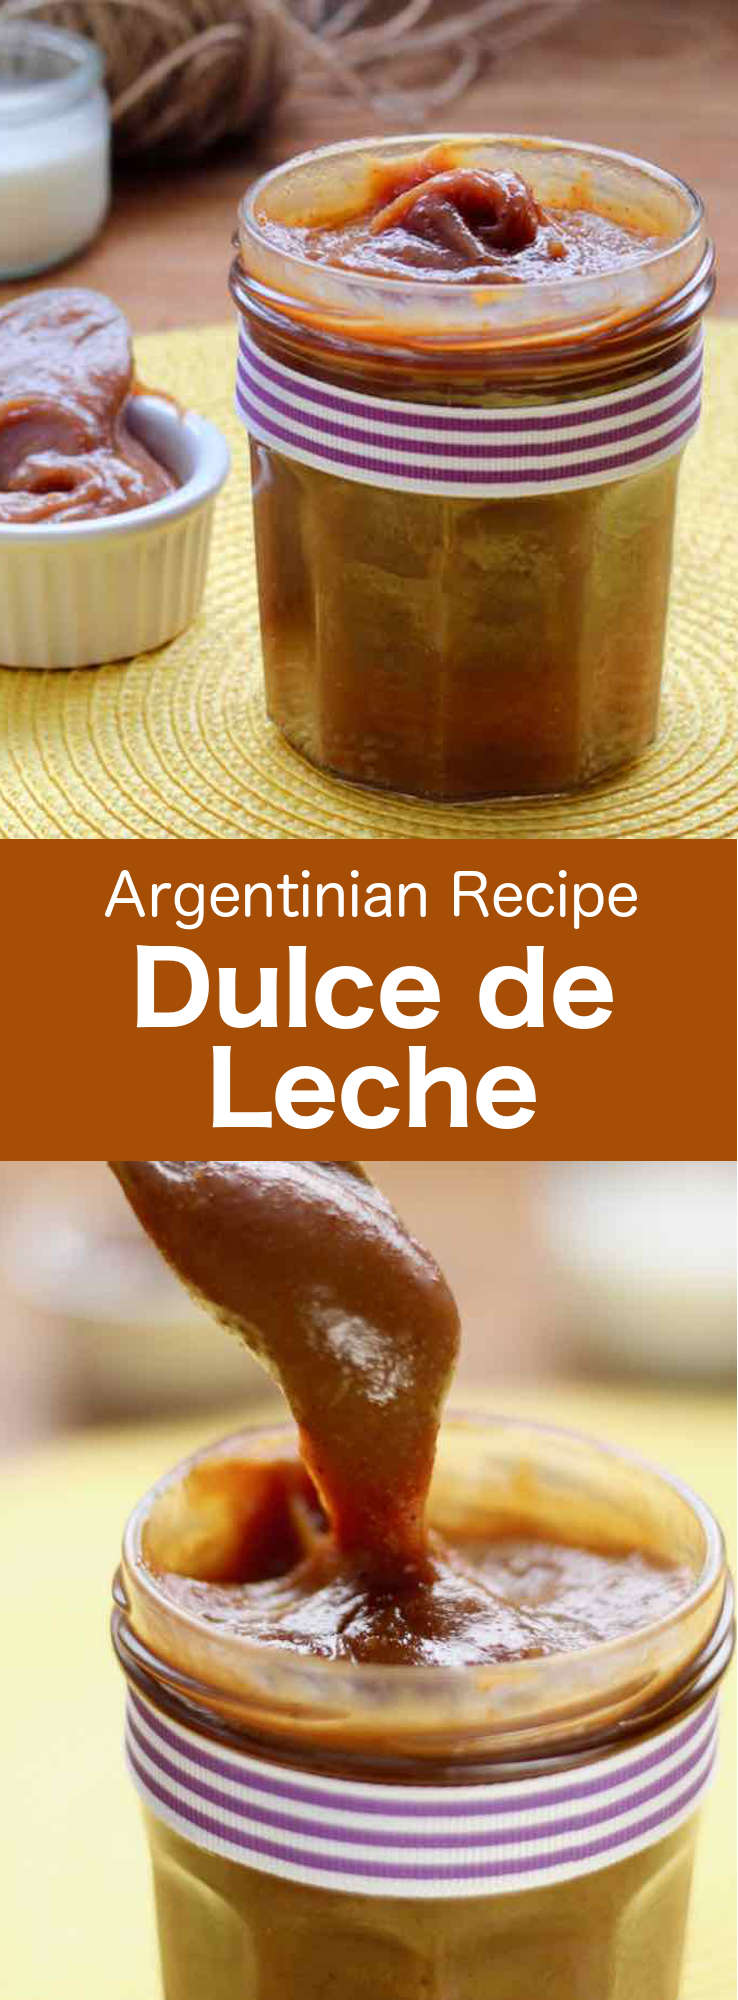 Dulce de leche or milk jam, is produced by the simmering of milk and sugar. It is a very popular ingredient in Latin America and Spain. #Argentina #ArgentinianCuisine #ArgentinianRecipe #ArgentinianFood #WorldCuisine #196flavors